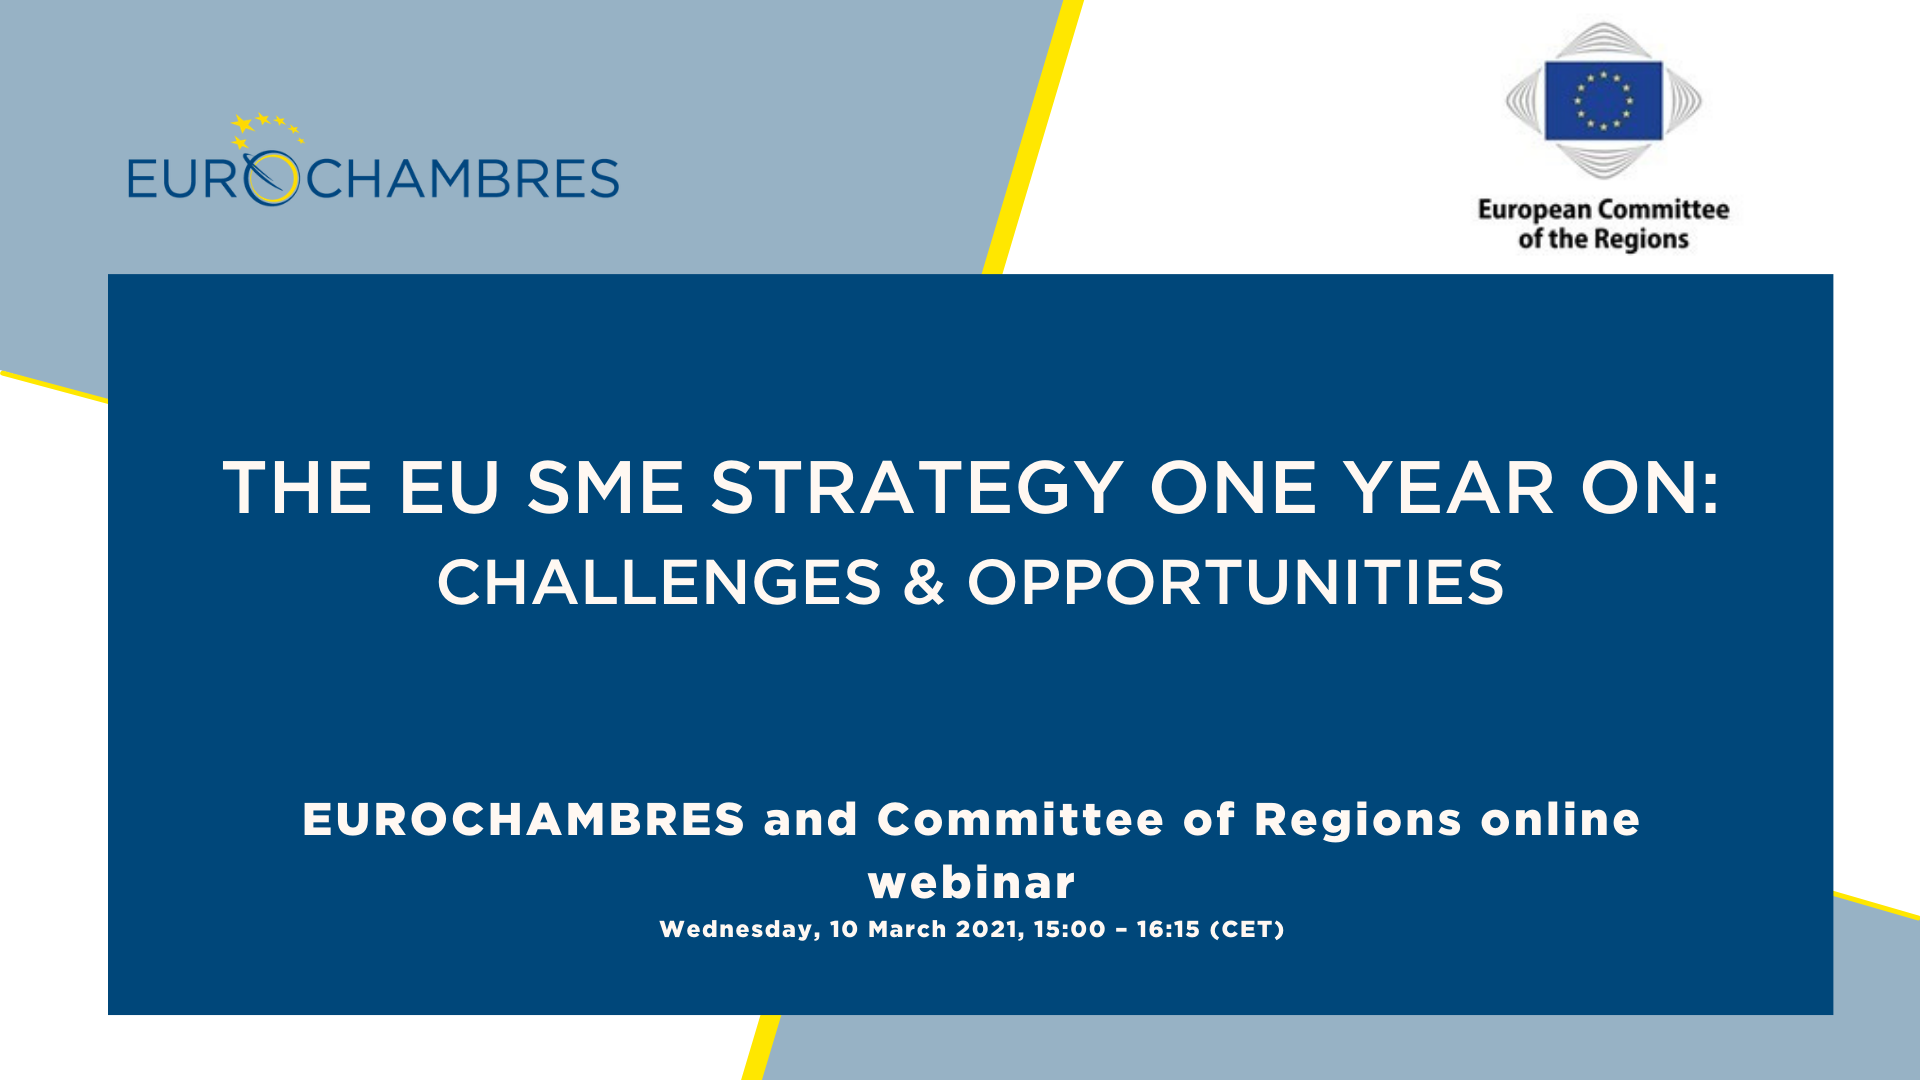 Joint ECON - CoR - Eurochambres webinar 'EU SME Strategy one year on'